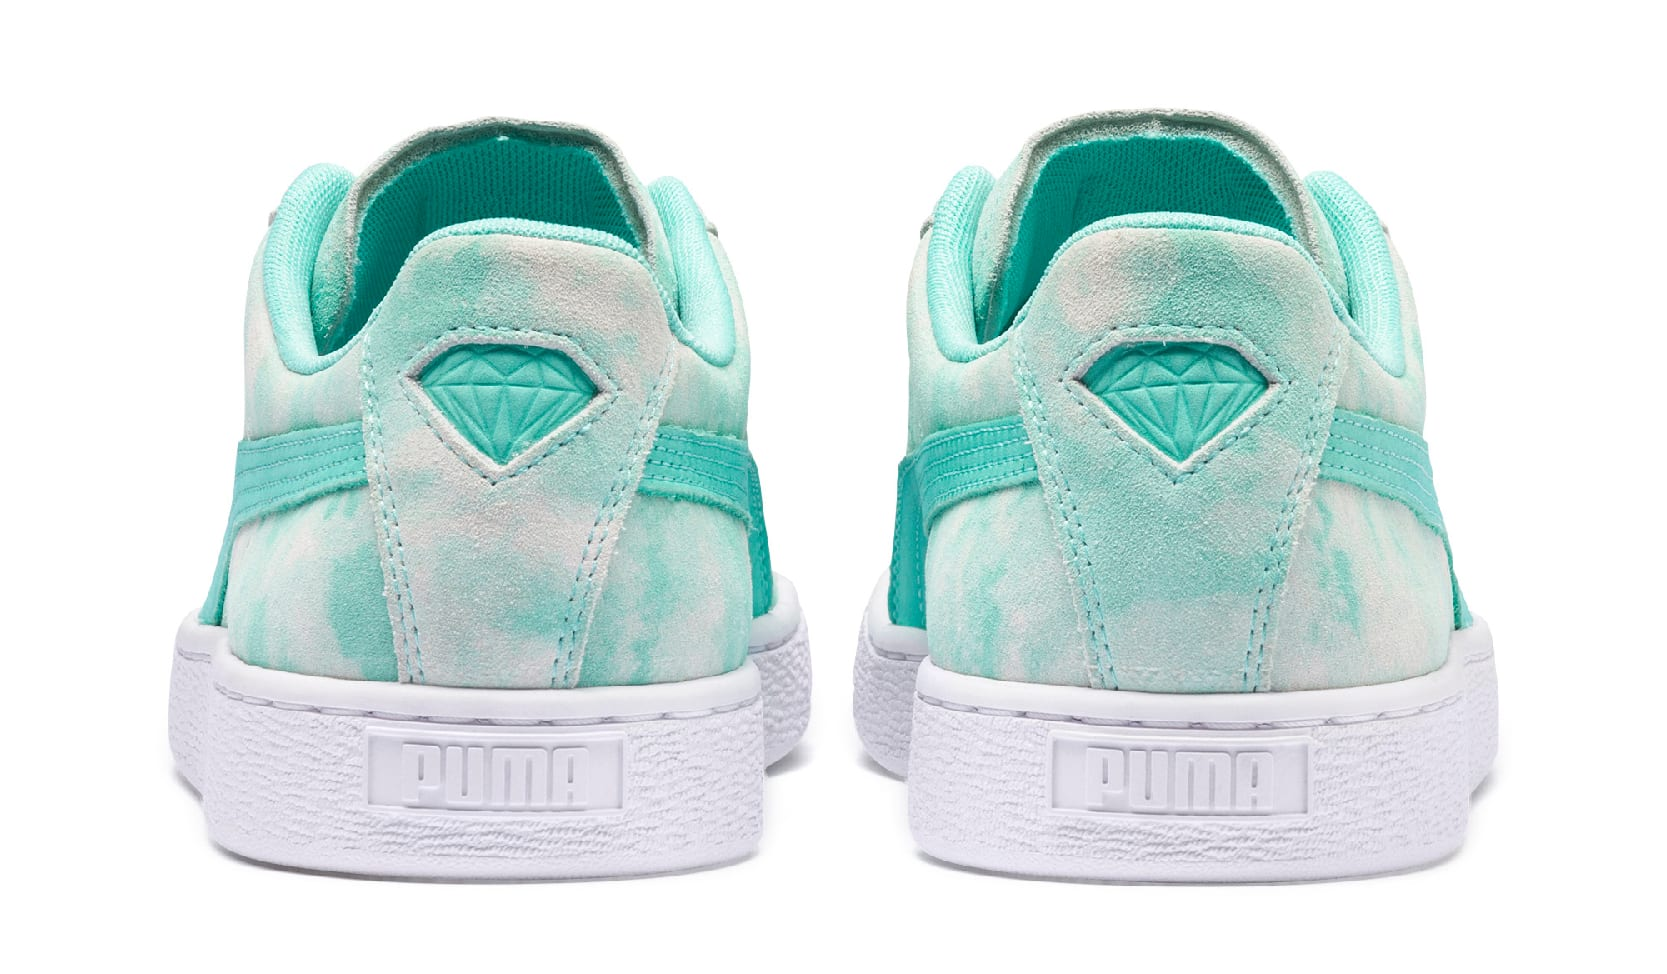 Diamond Supply Co. x Puma Suede 369396 (Heel)